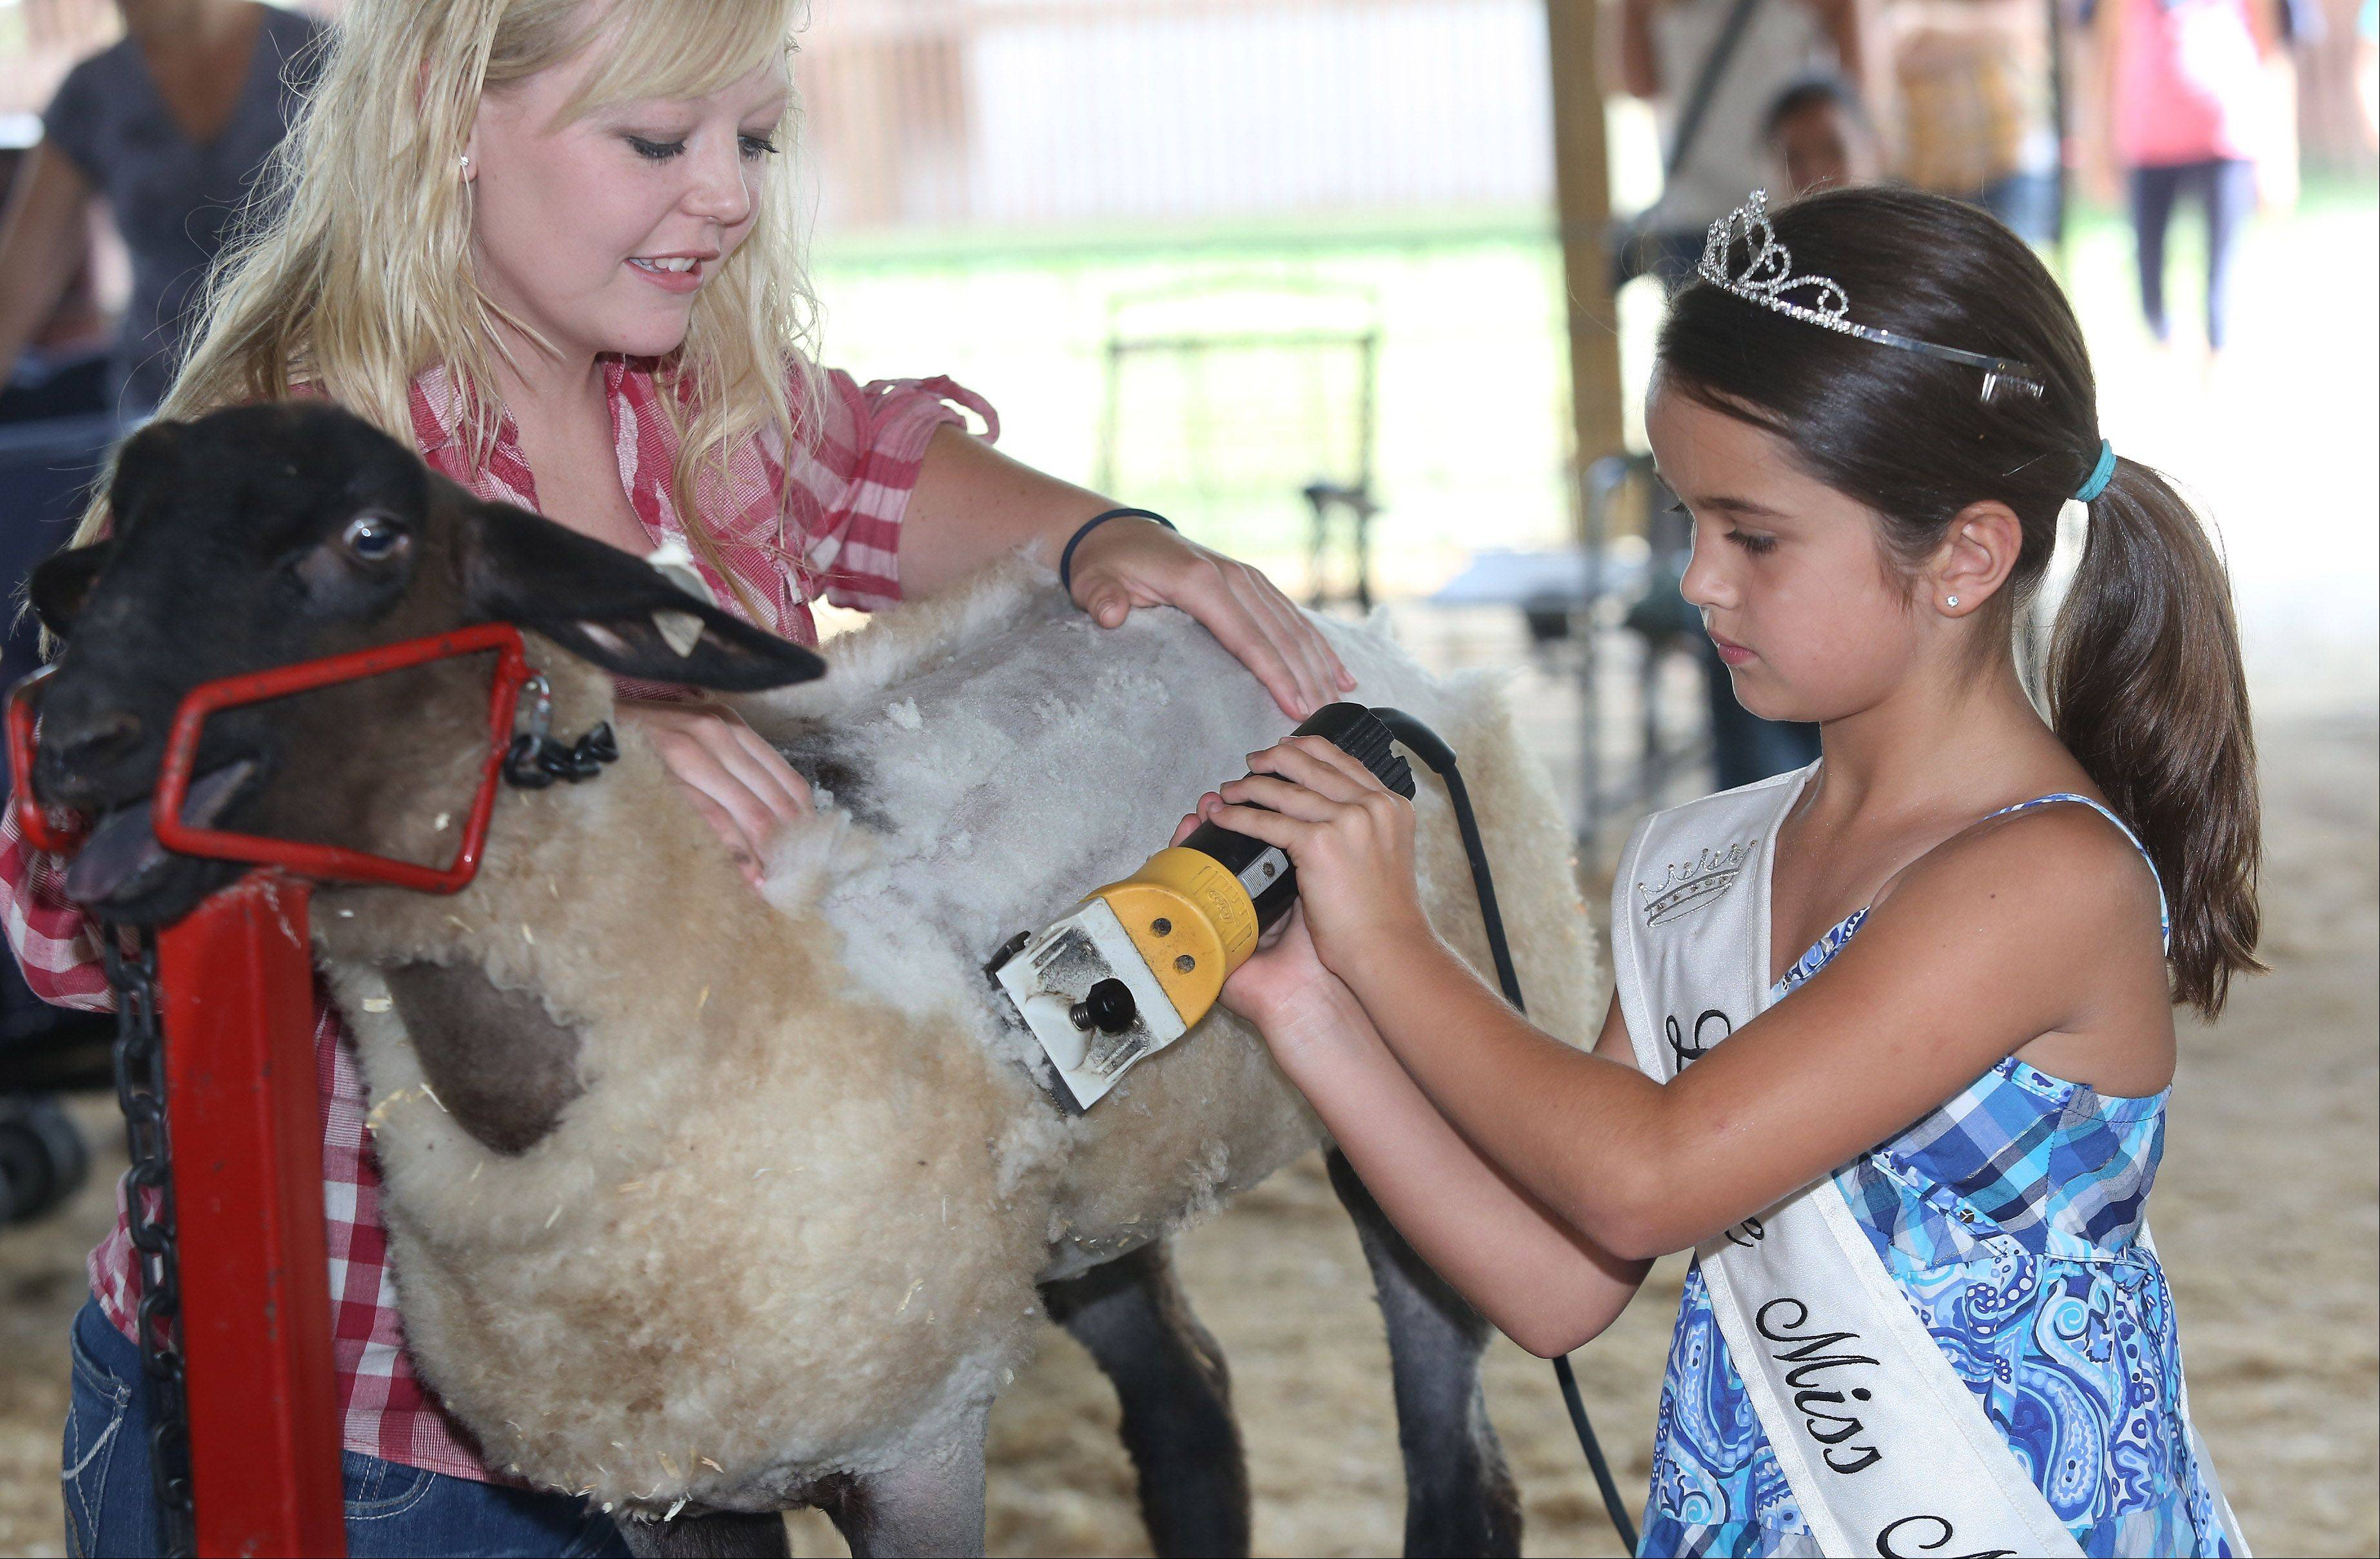 Little Miss Wauconda Kyra Ryba, 8, shears a sheep with help from Haley White of Wauconda during the Lake County Fair Thursday at the Lake County Fairgrounds in Grayslake.